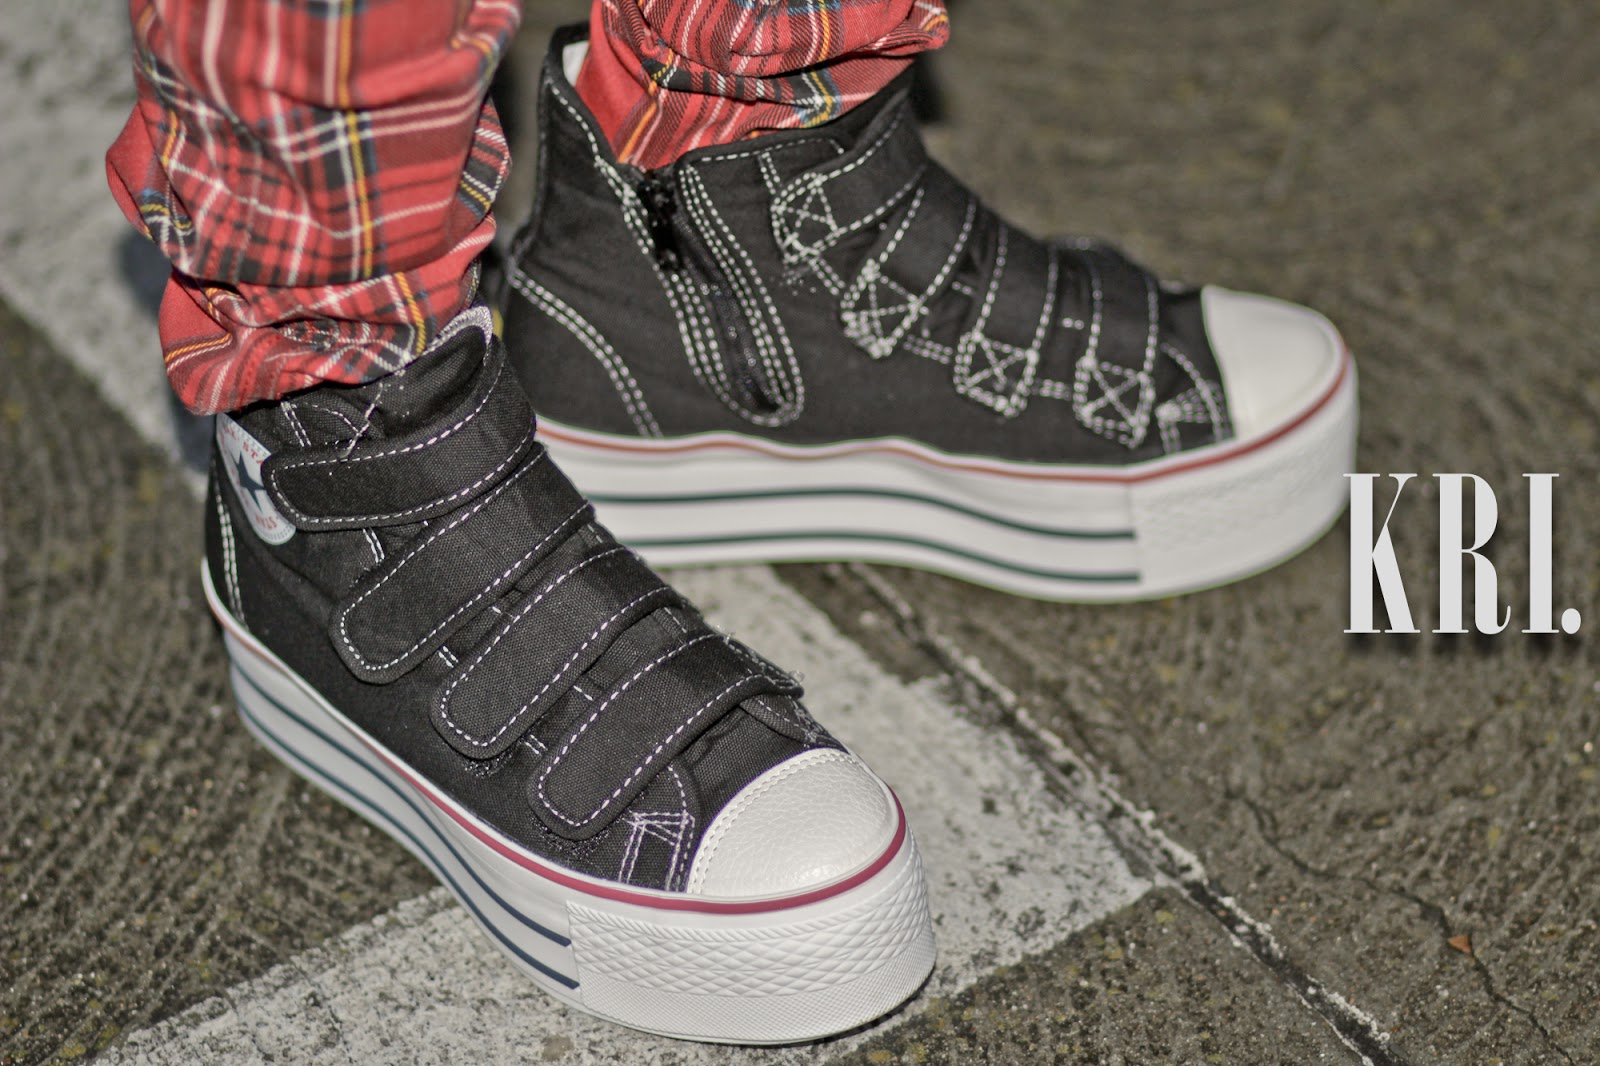 maxstar sneakers, boy london clothing, tripp nyc plaid pants